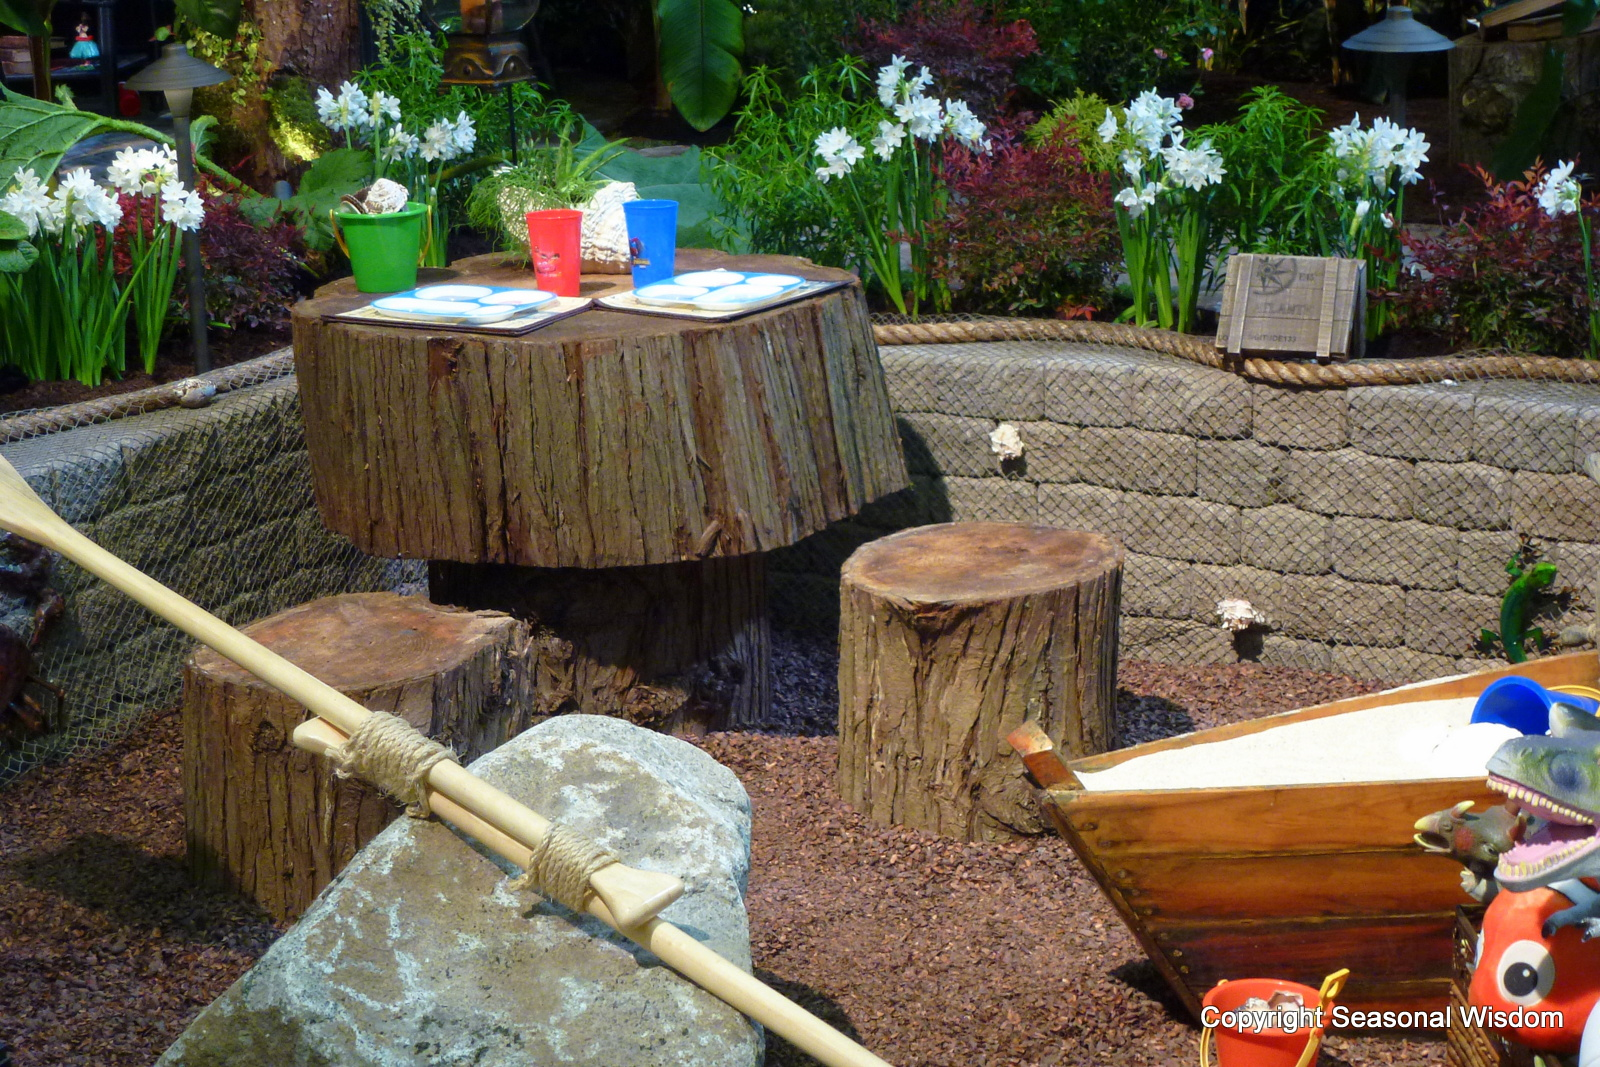 close up of kids garden with wooden table teeter totter and sandbox sandbox design ideas - Sandbox Design Ideas